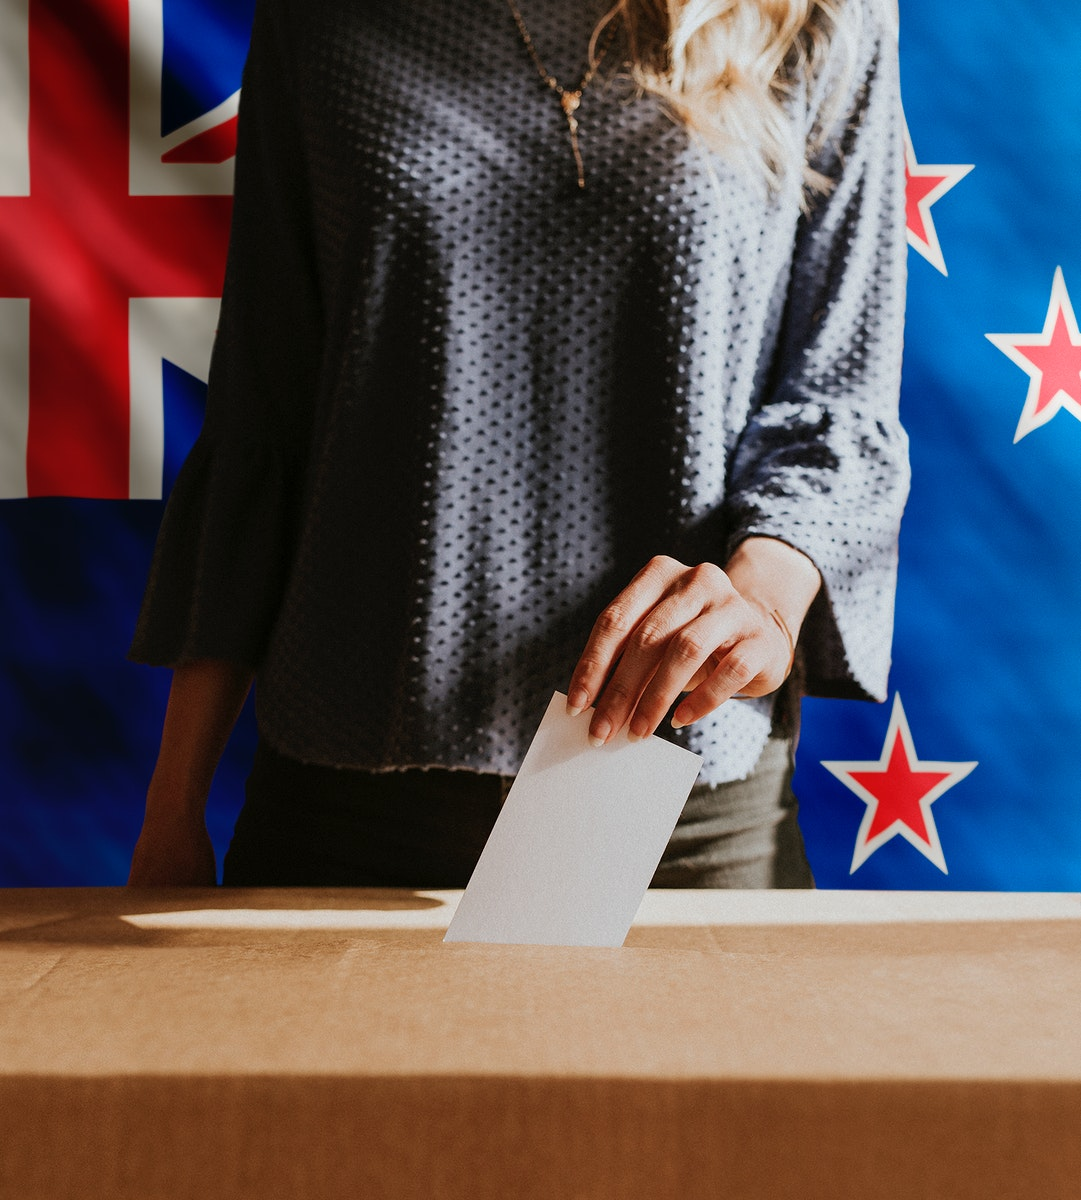 New Zealander woman putting a vote card into poll box